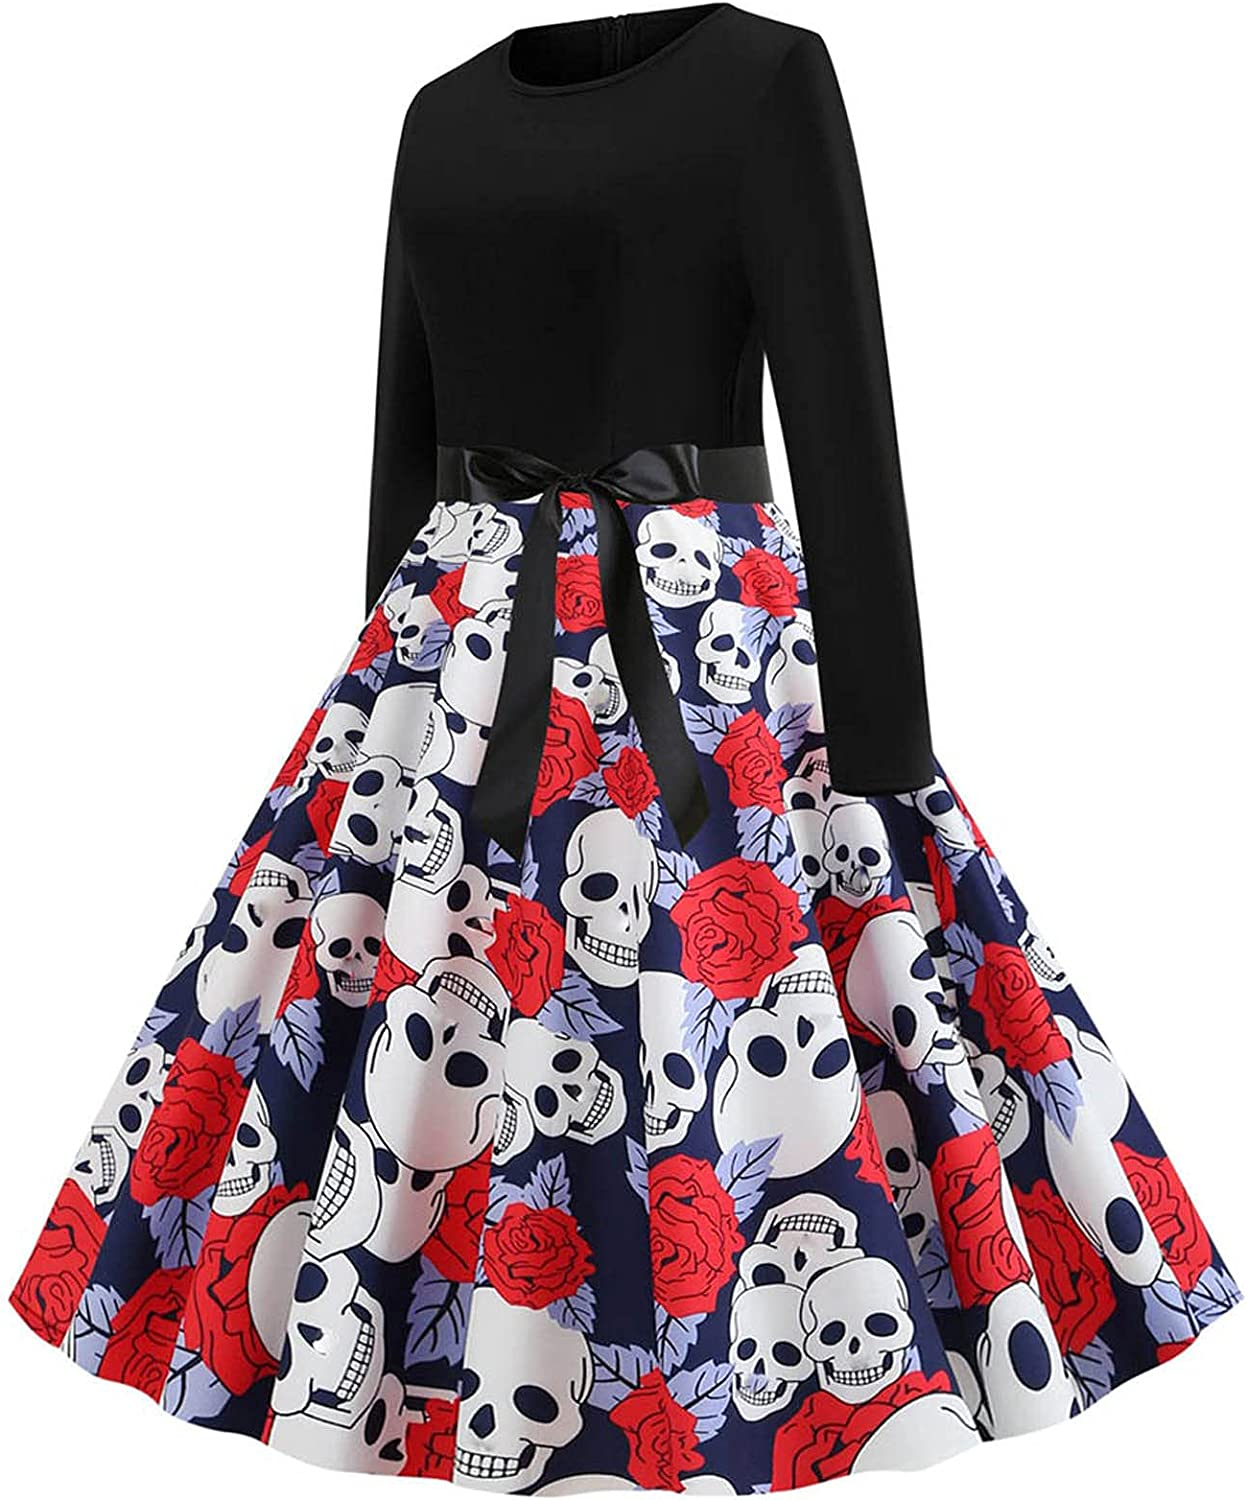 Kidyawn Womens Dresses Halloween Evening Party Prom Long Sleeve Skull Printed Patchwork Swing Midi Dress with Bow Belt